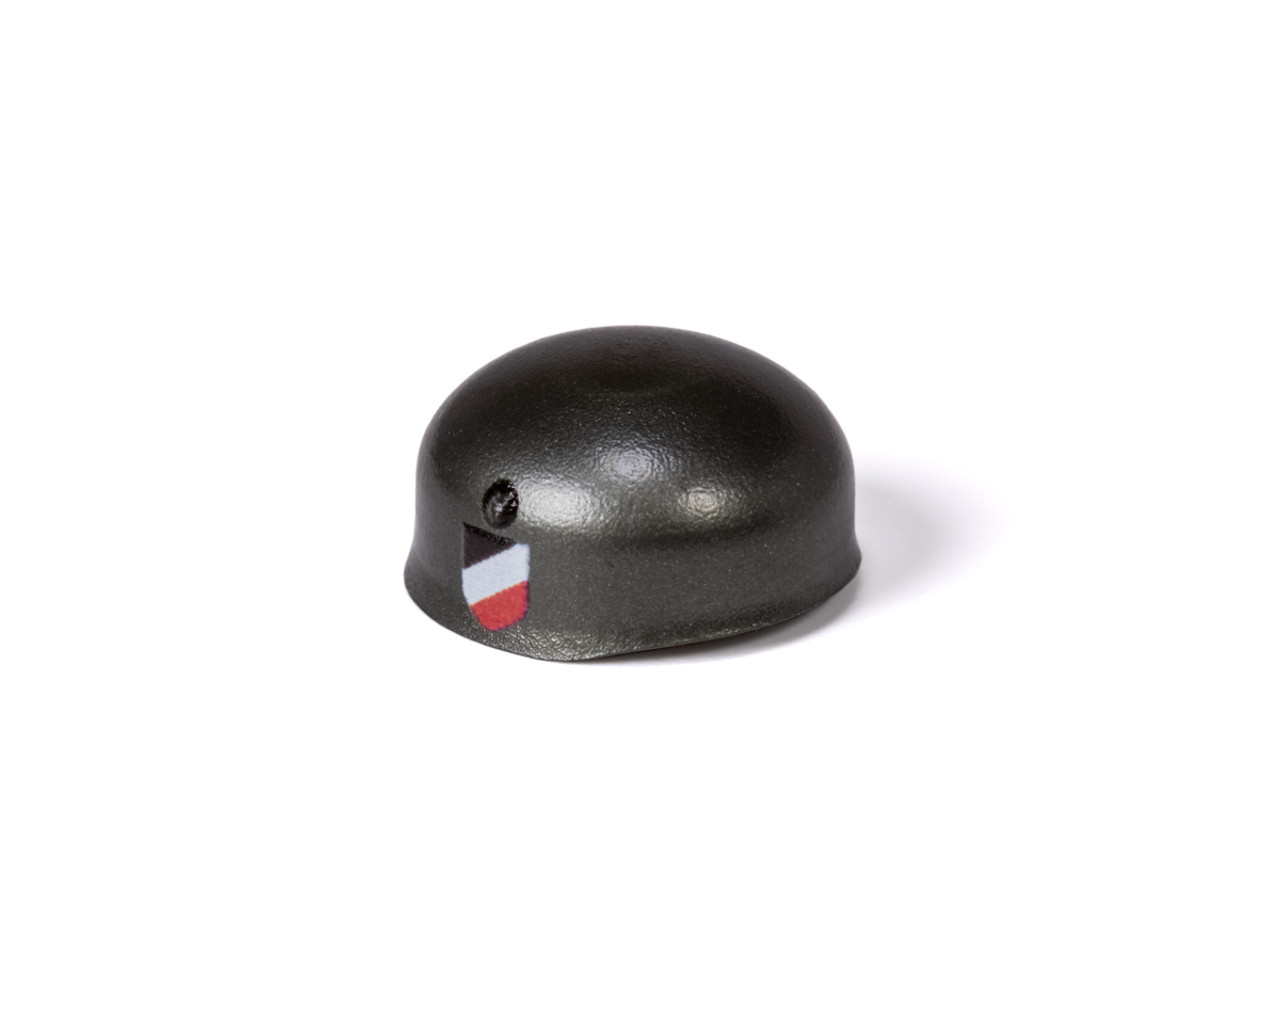 WWII BrickArms® Fallschirmjäger Helmet with Side Prints (Gunmetal)